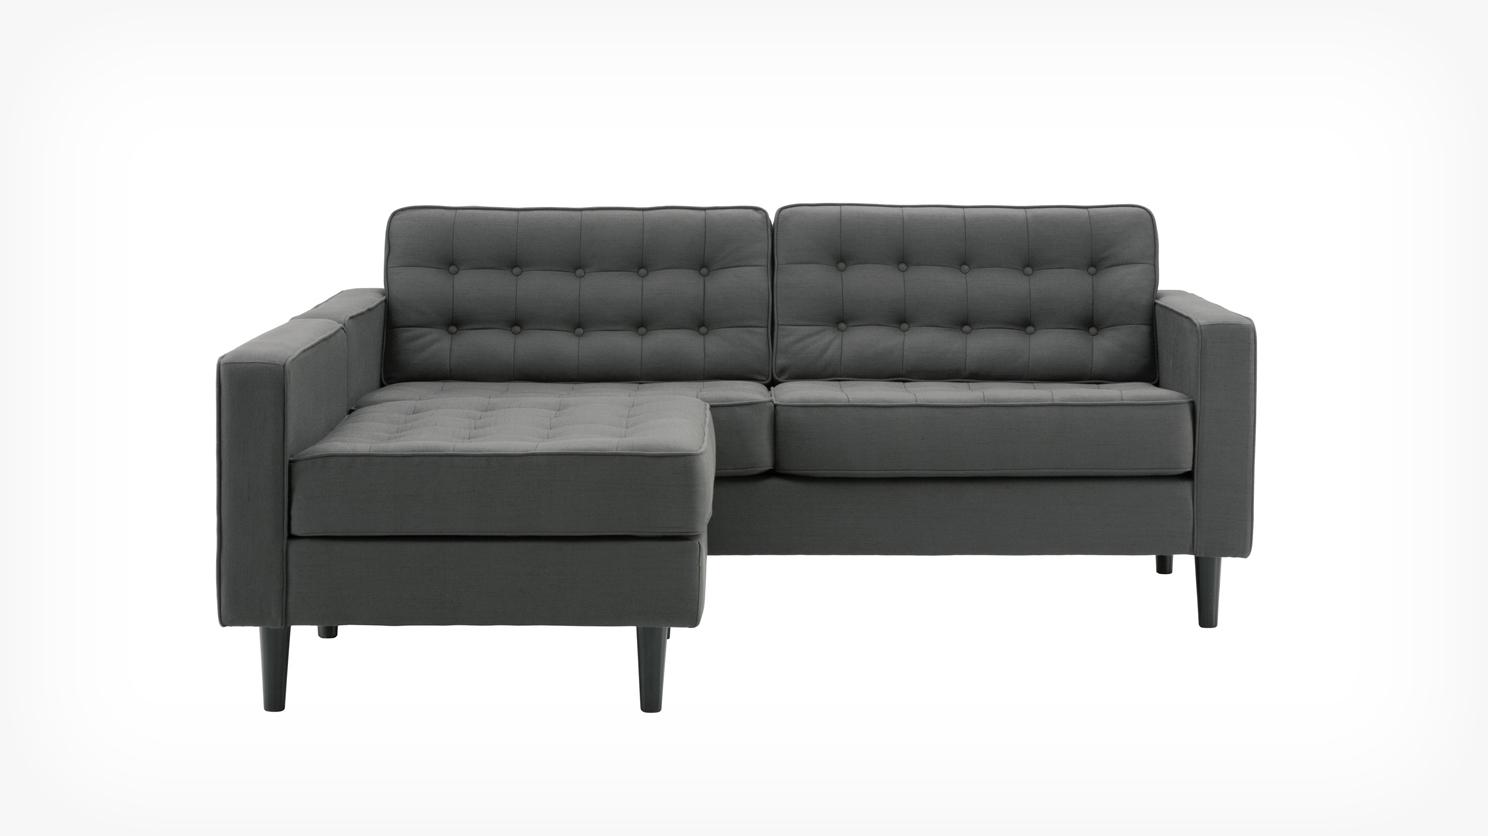 Reverie Apartment 2 Piece Sectional Sofa With Chaise – Fabric (View 6 of 15)